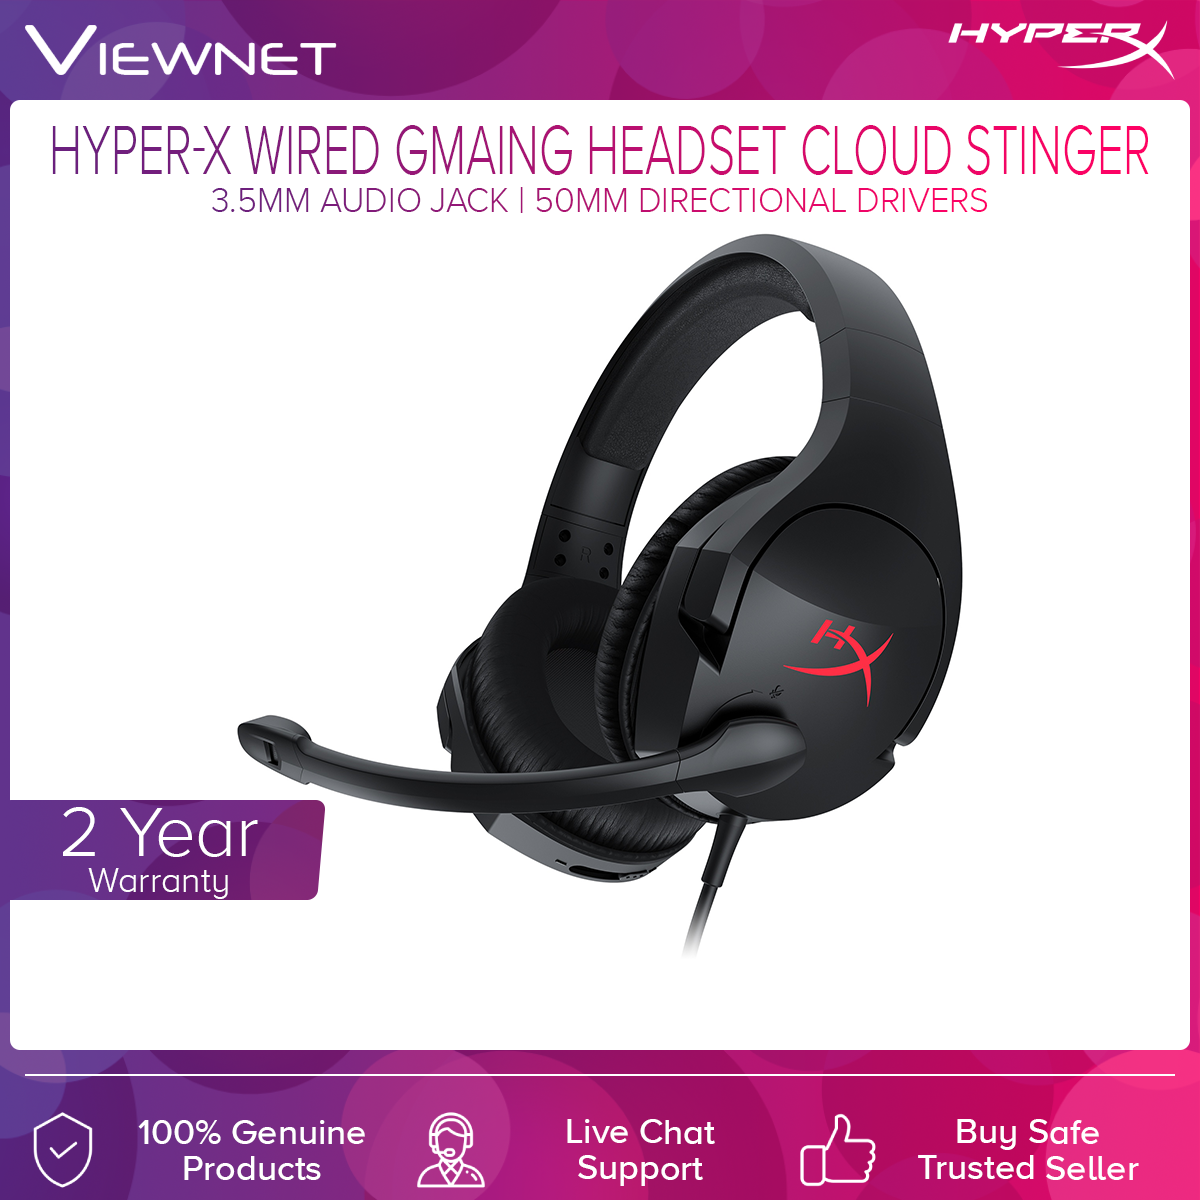 HyperX Cloud Stinger for Gaming Headset (HX-HSCS-BK/AS), Lightweight, 90° rotating ear cups, Immersive in-game audio, Noise-cancellation microphone